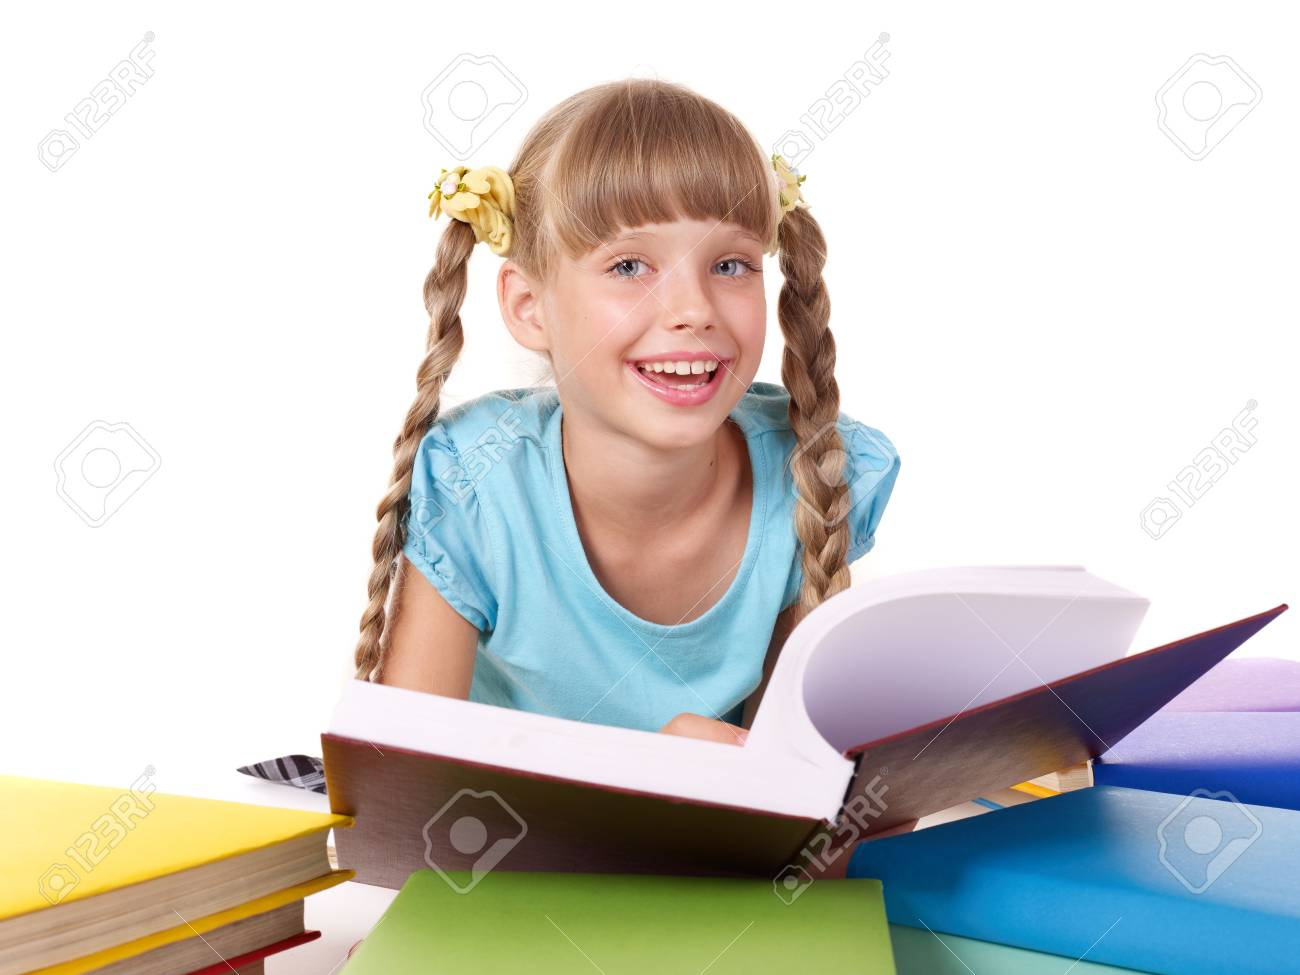 Child with pile of books  reading on floor. Isolated. Stock Photo - 7450539